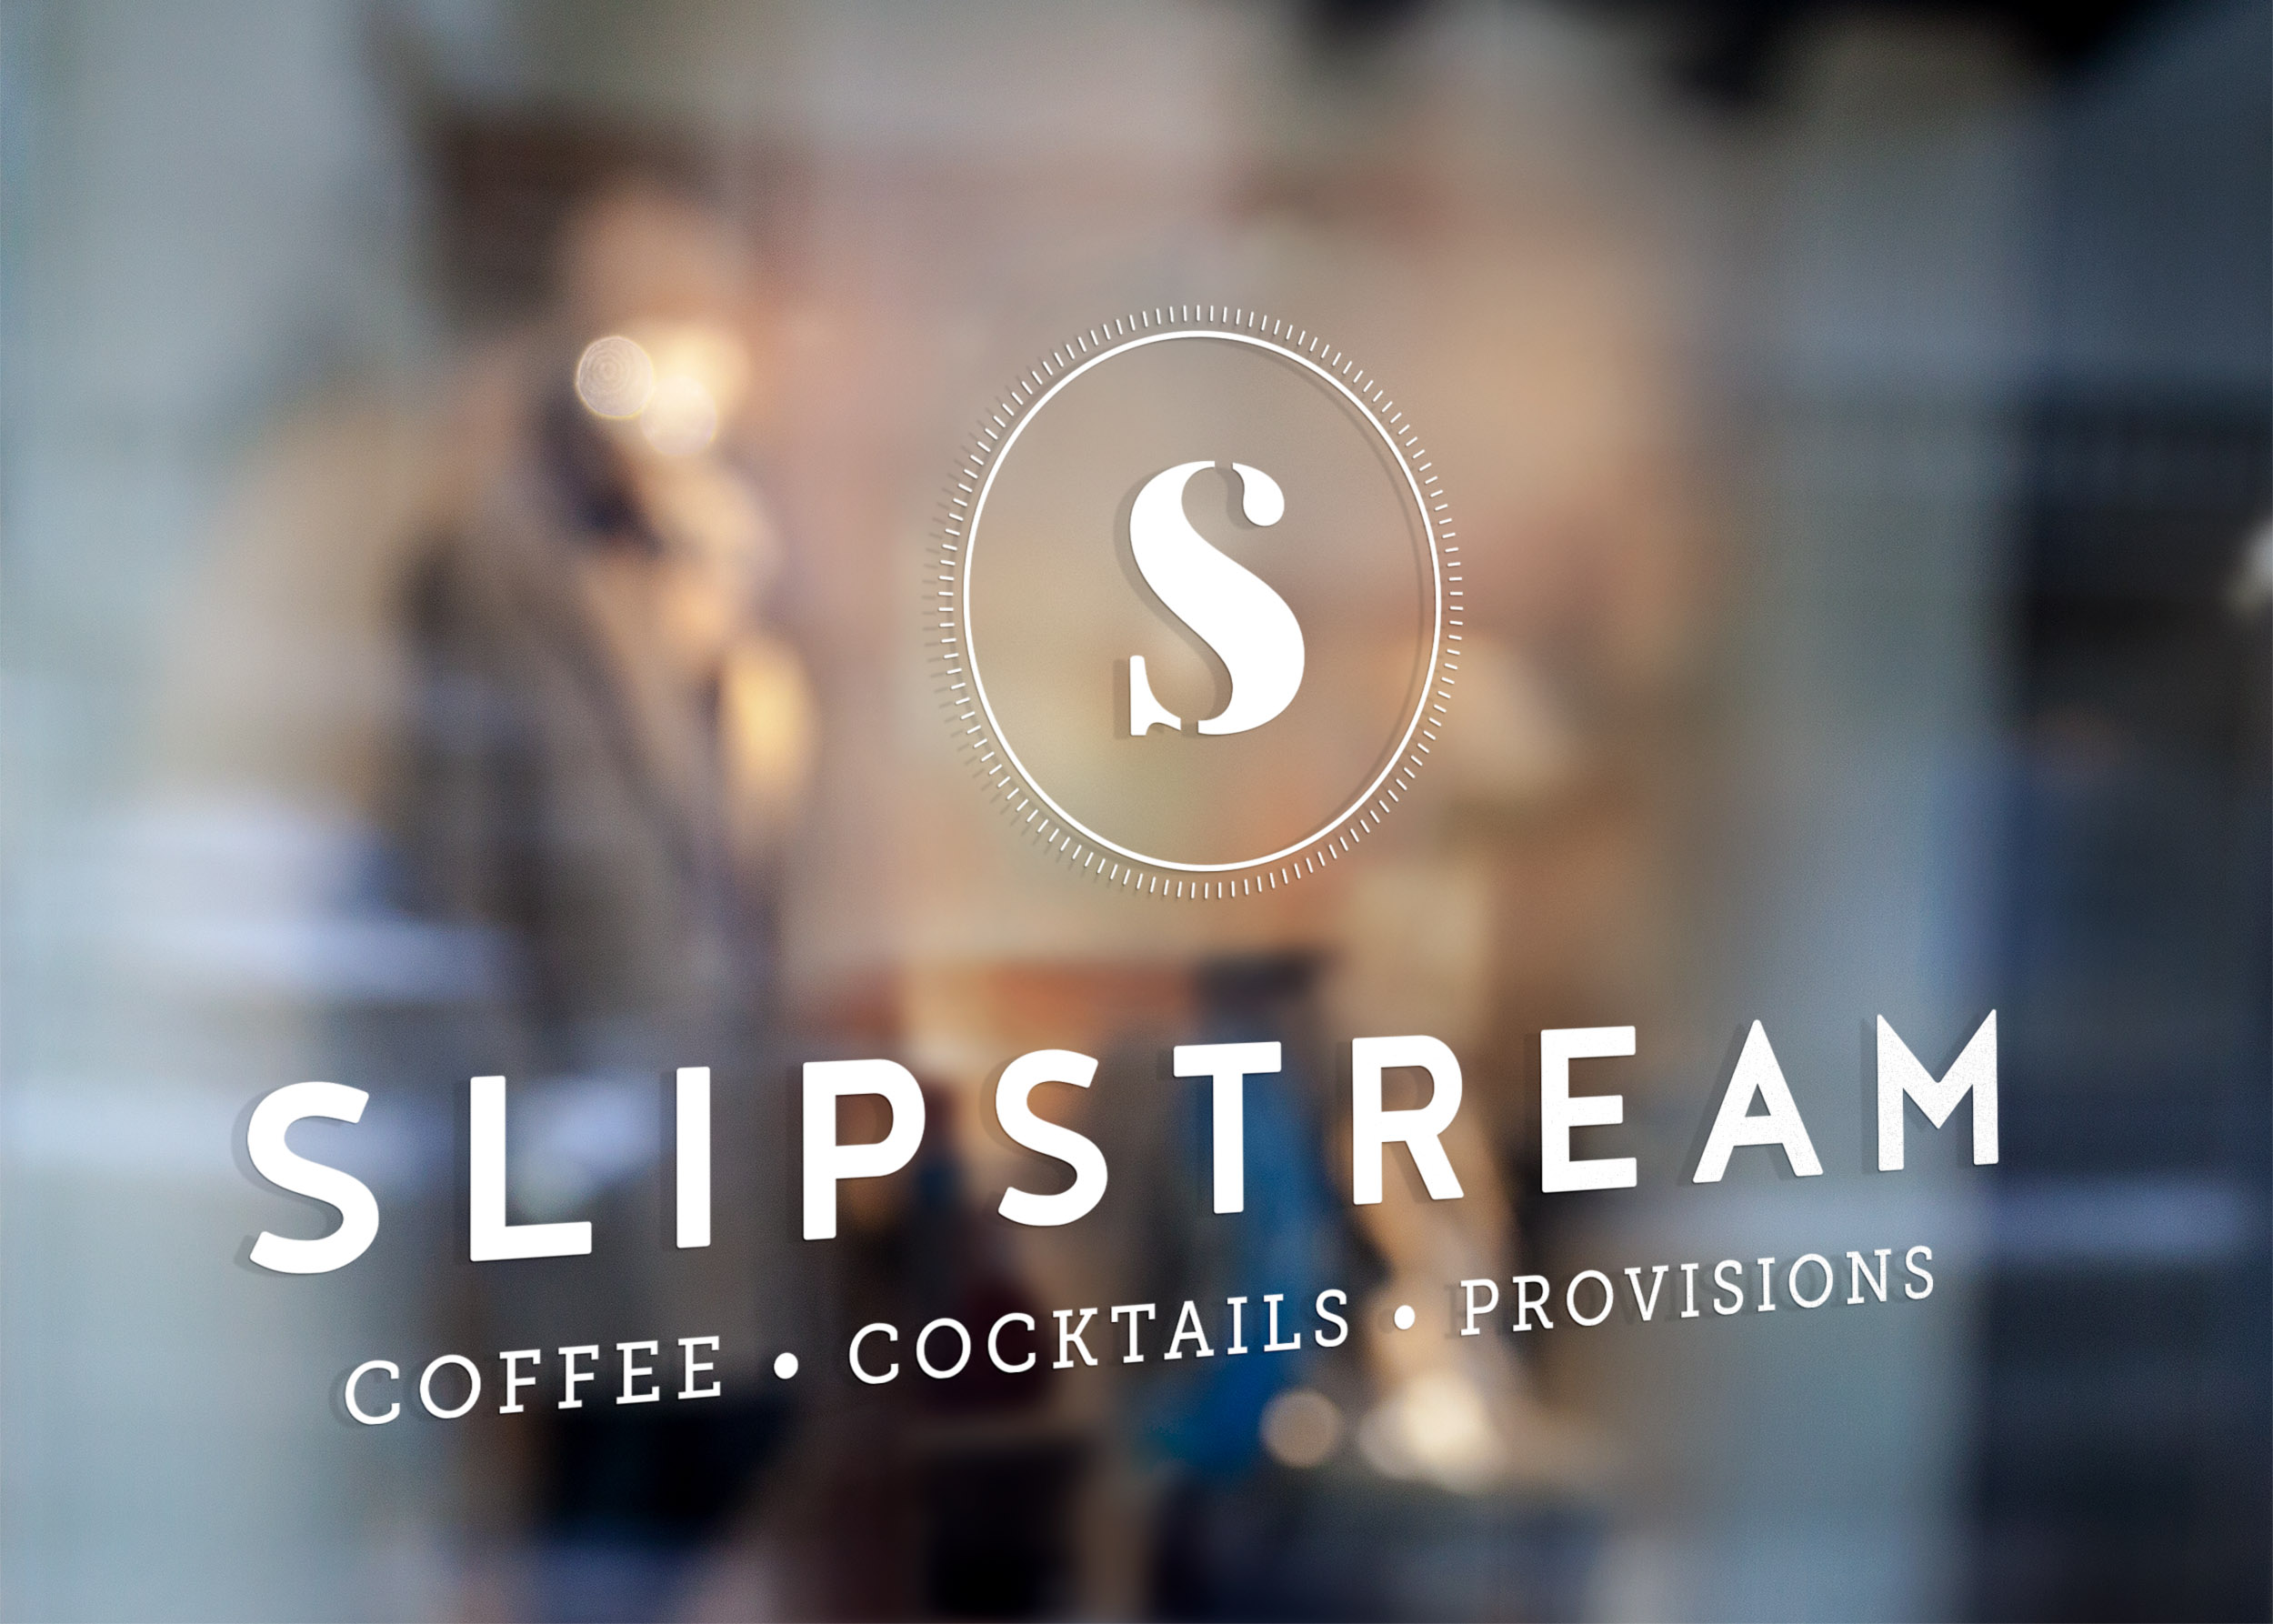 Slipstream_Window signage mockup_V01.jpg